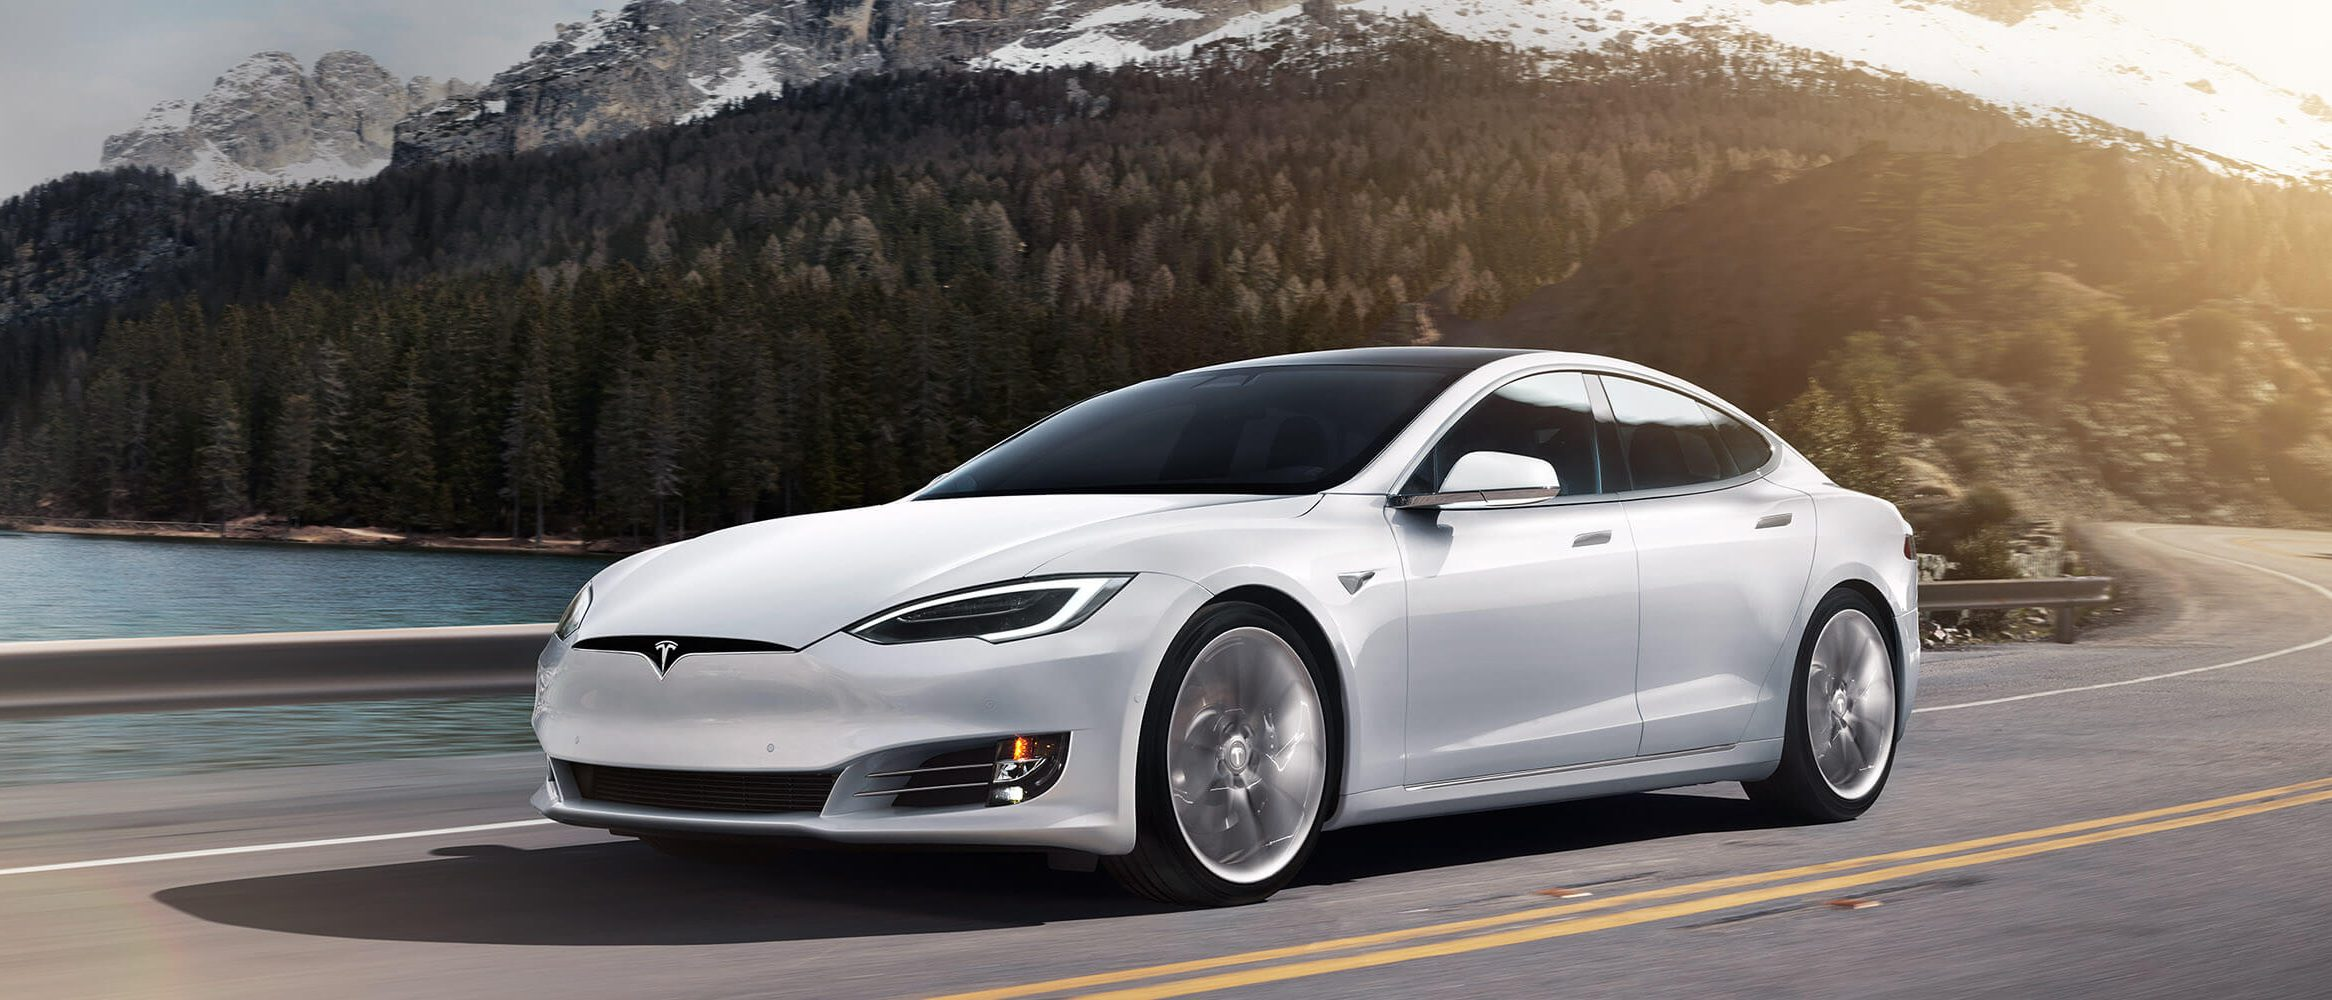 Tesla releases new longer range Model S and Model X with drivetrain, suspension upgrades, & more